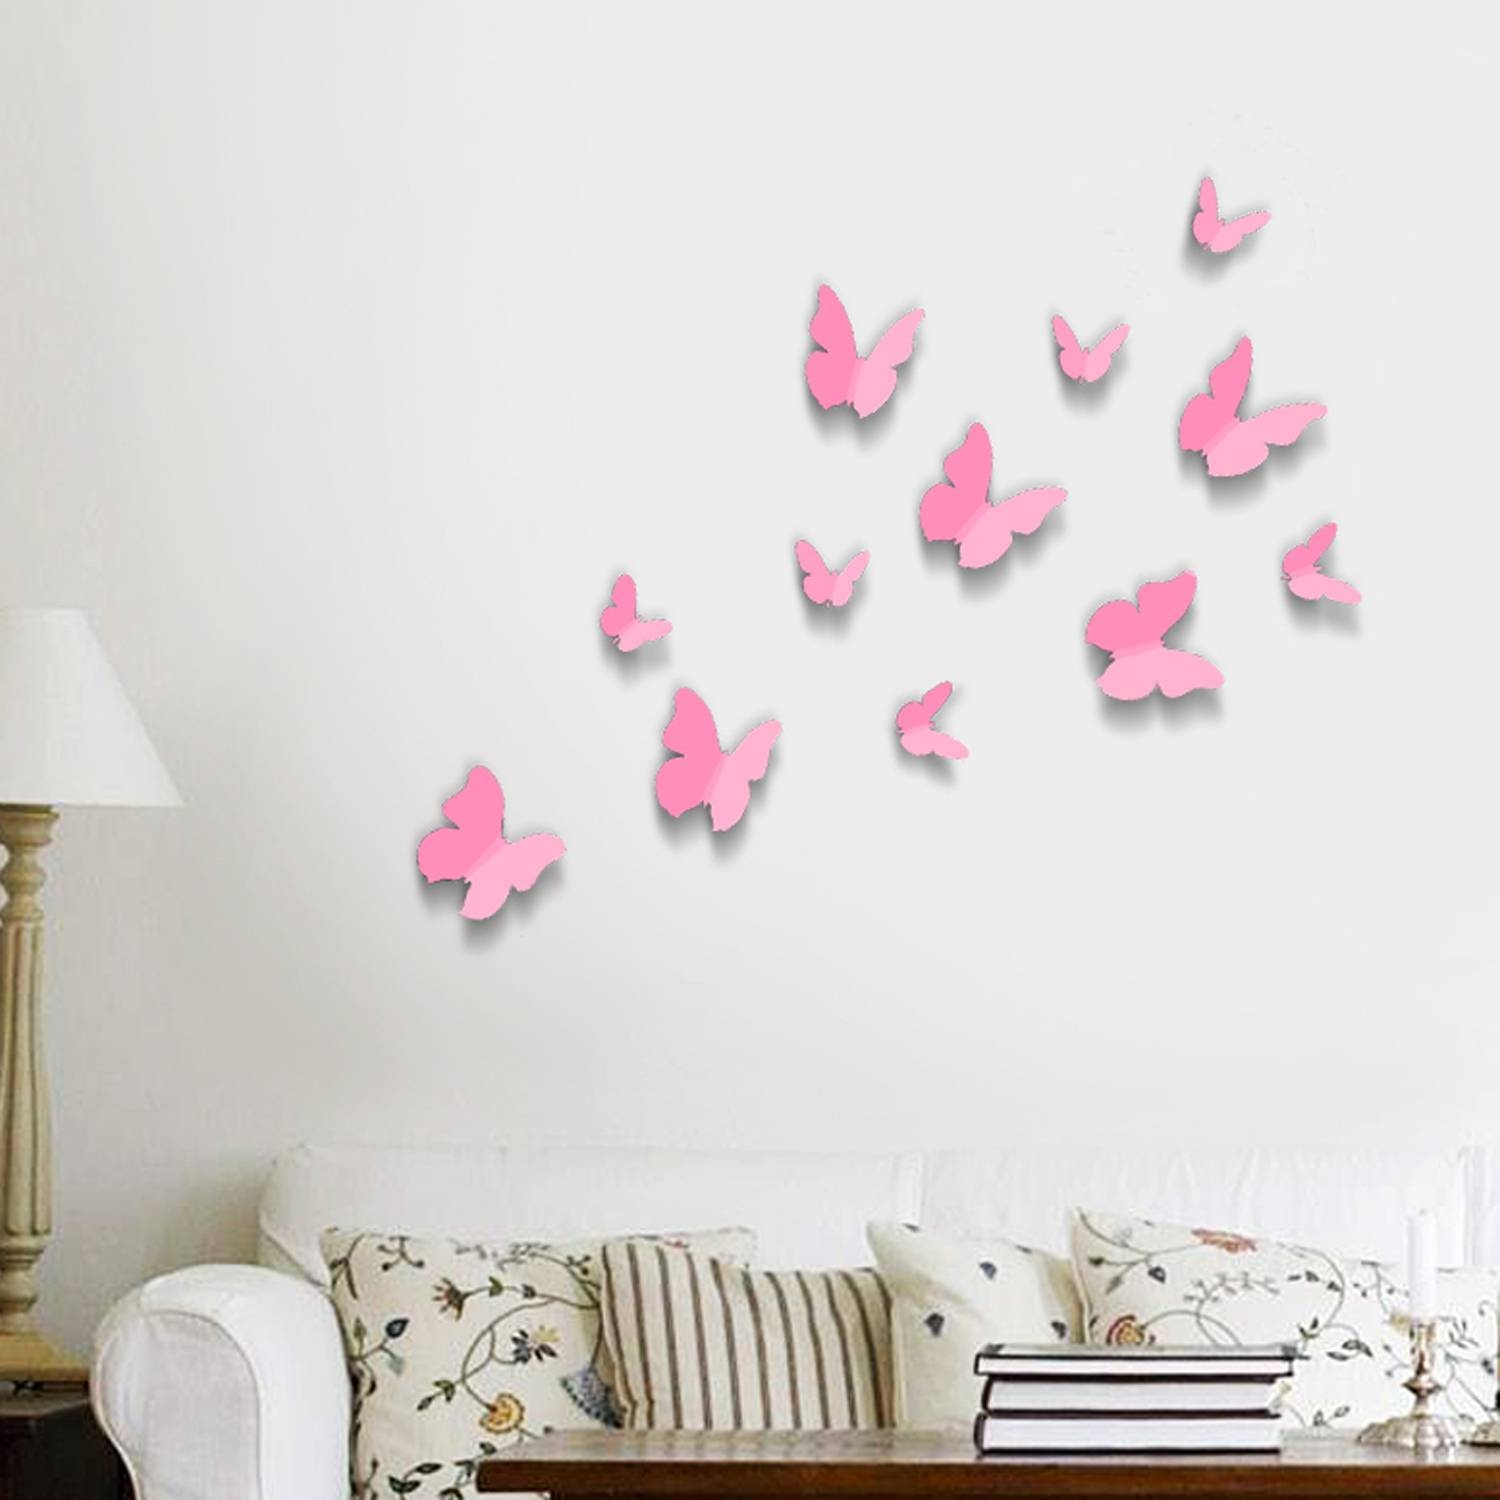 Pink 3D Butterflies Wall Art Stickers Pertaining To Most Current Butterflies 3D Wall Art (View 17 of 20)